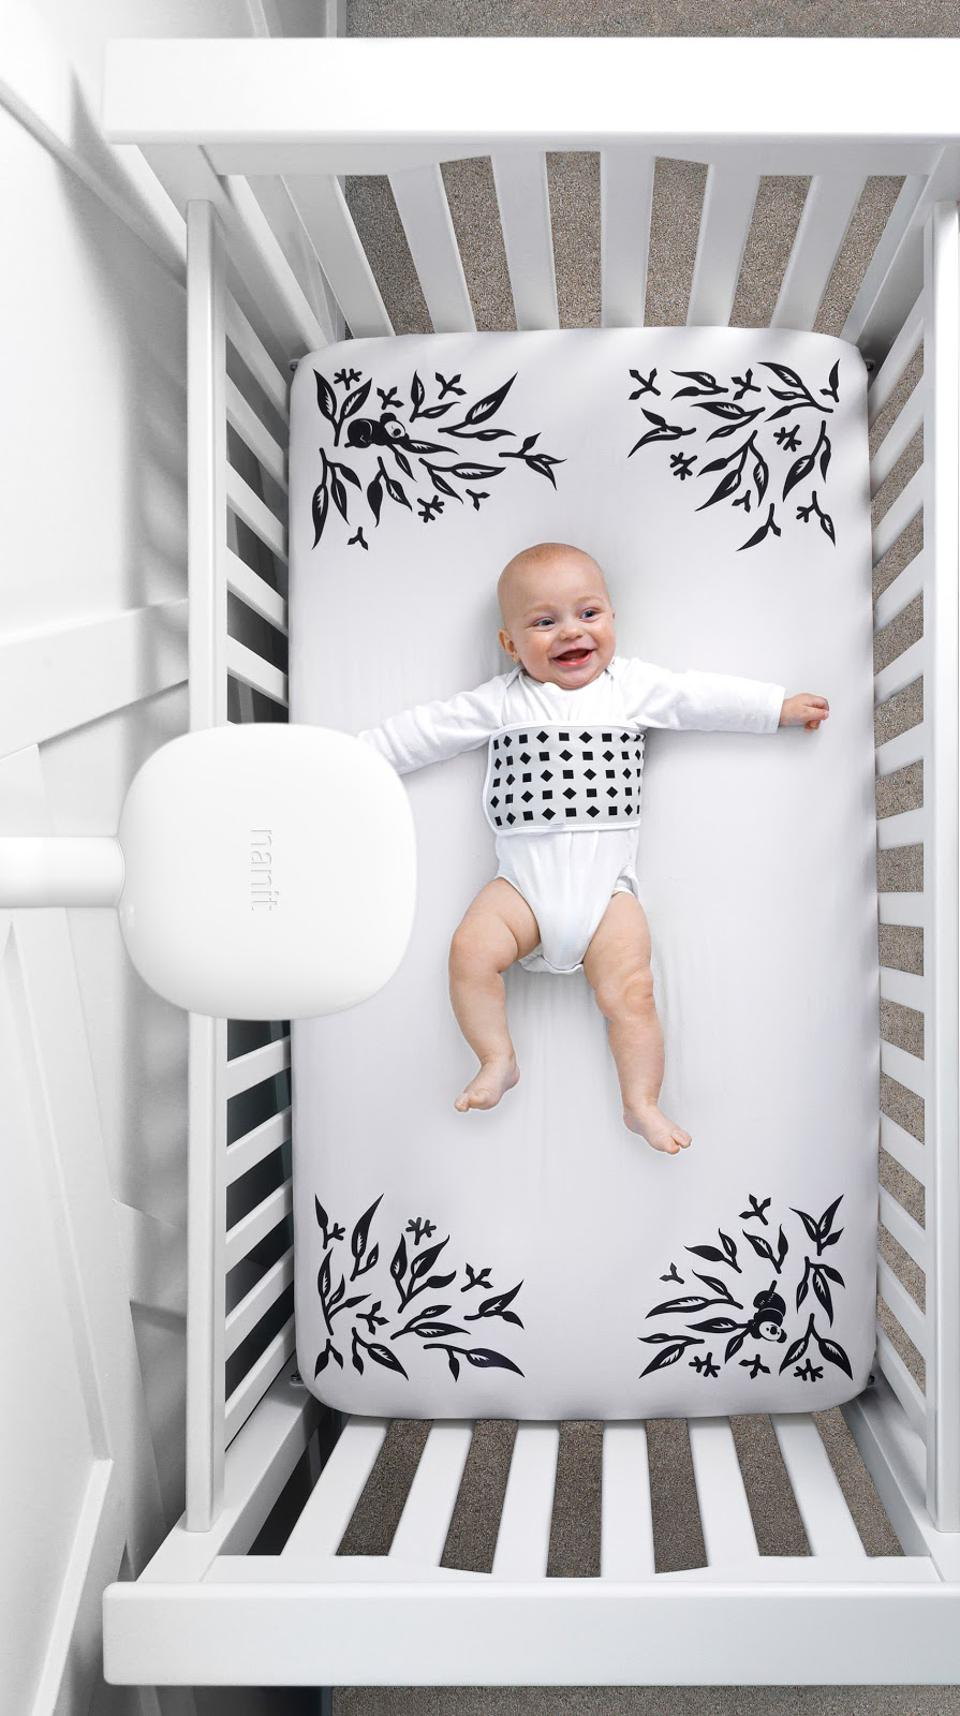 image of a baby lying on a black and white sheet in a crib with a baby monitor above